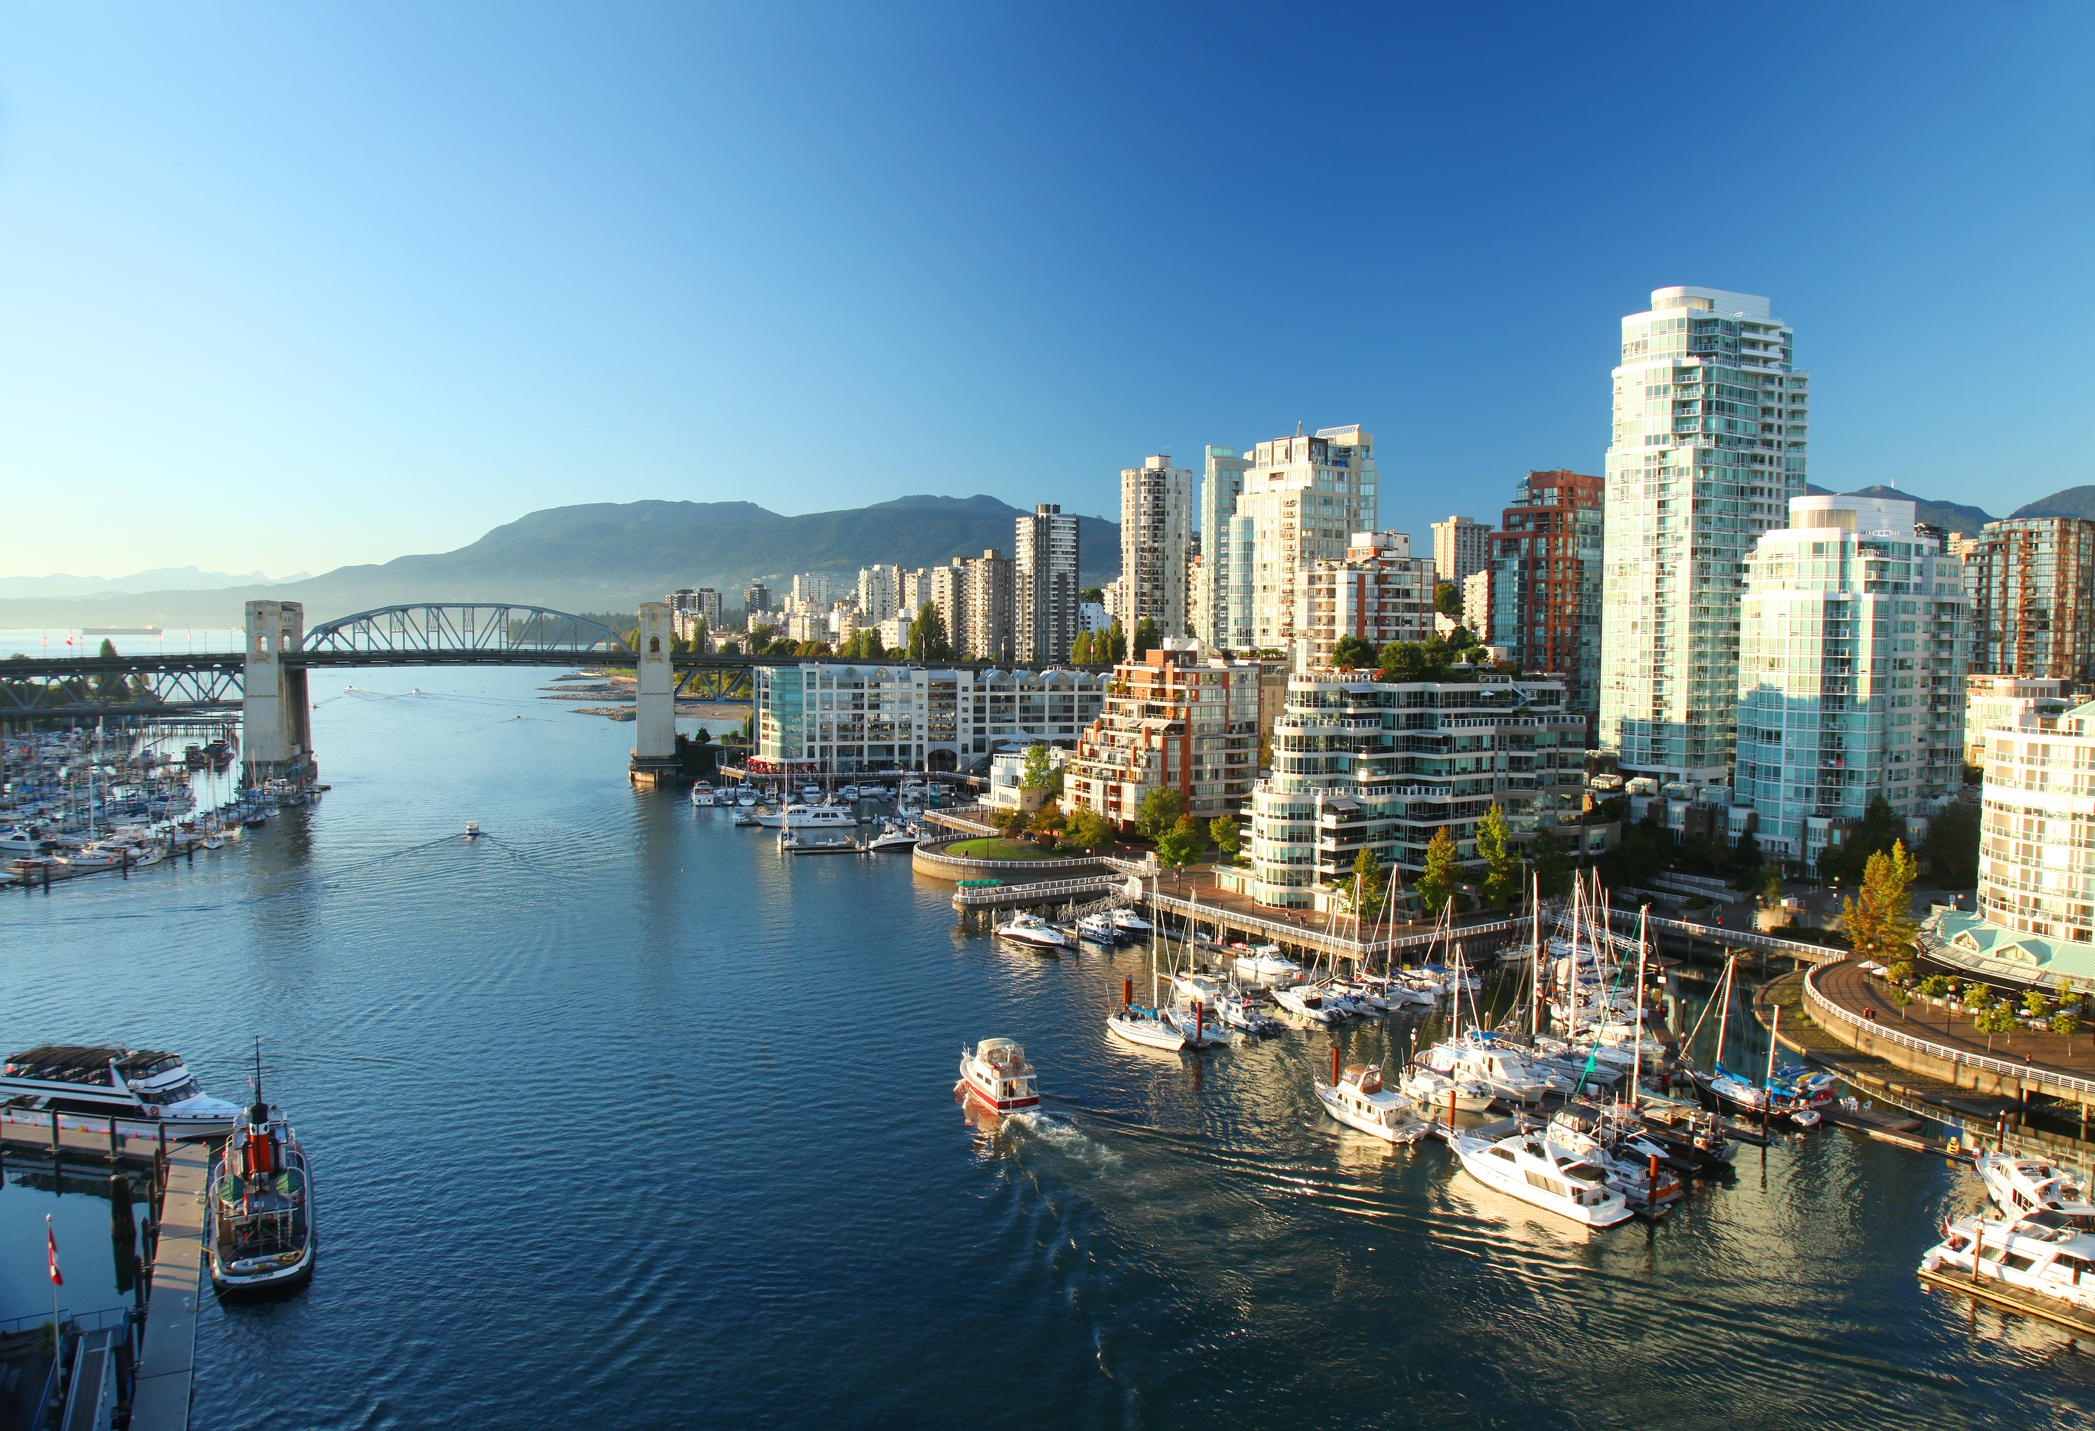 The downtown view of Vancouver in Canada in the morning